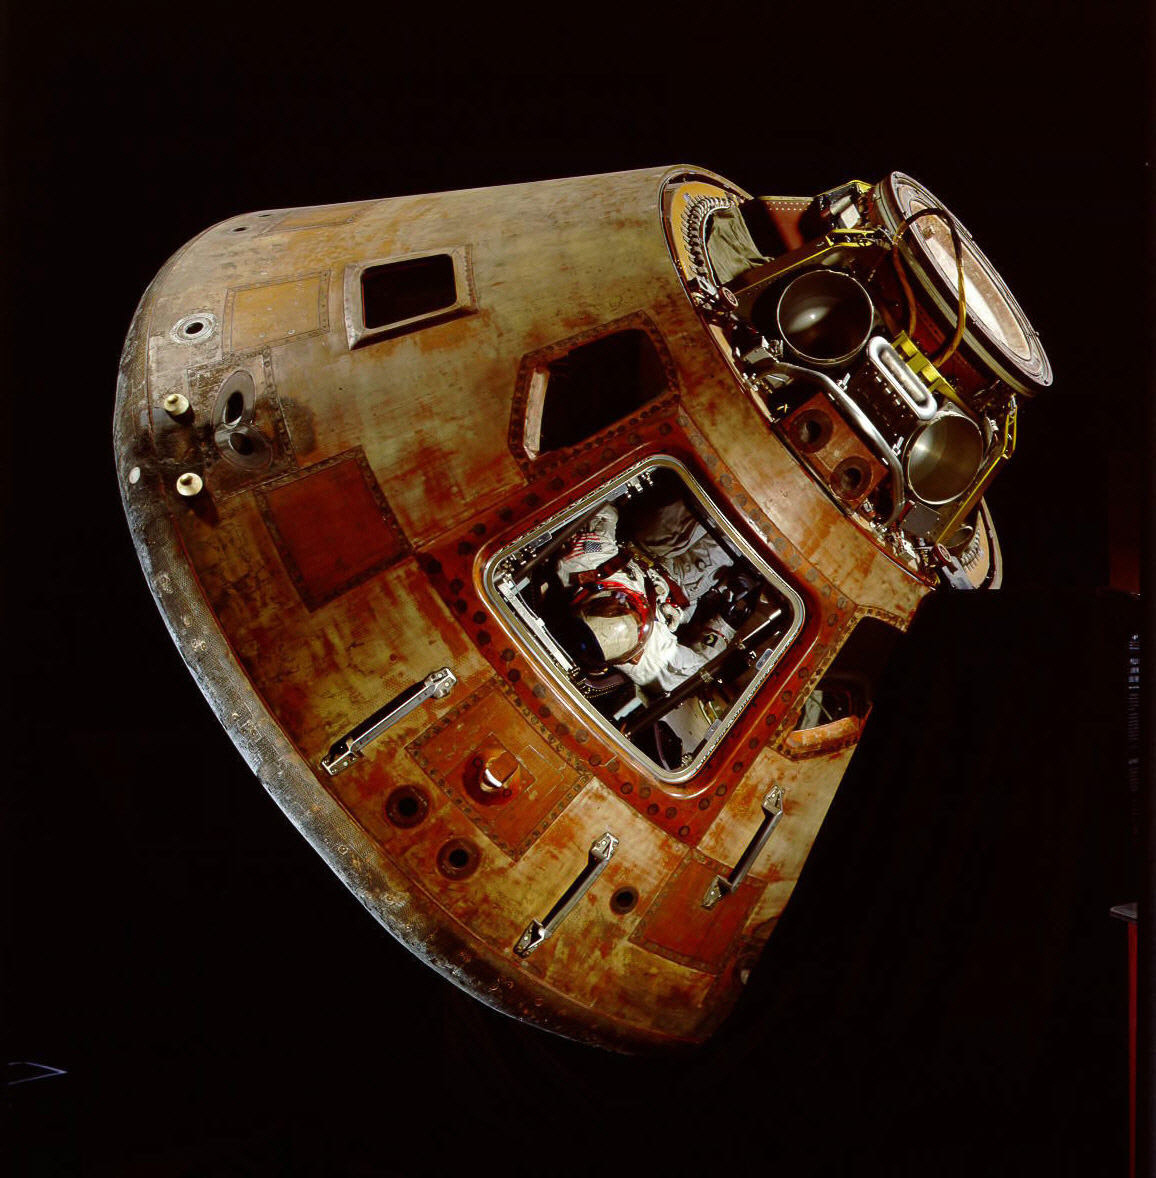 Apollo 11 Spacecraft Model - Pics about space